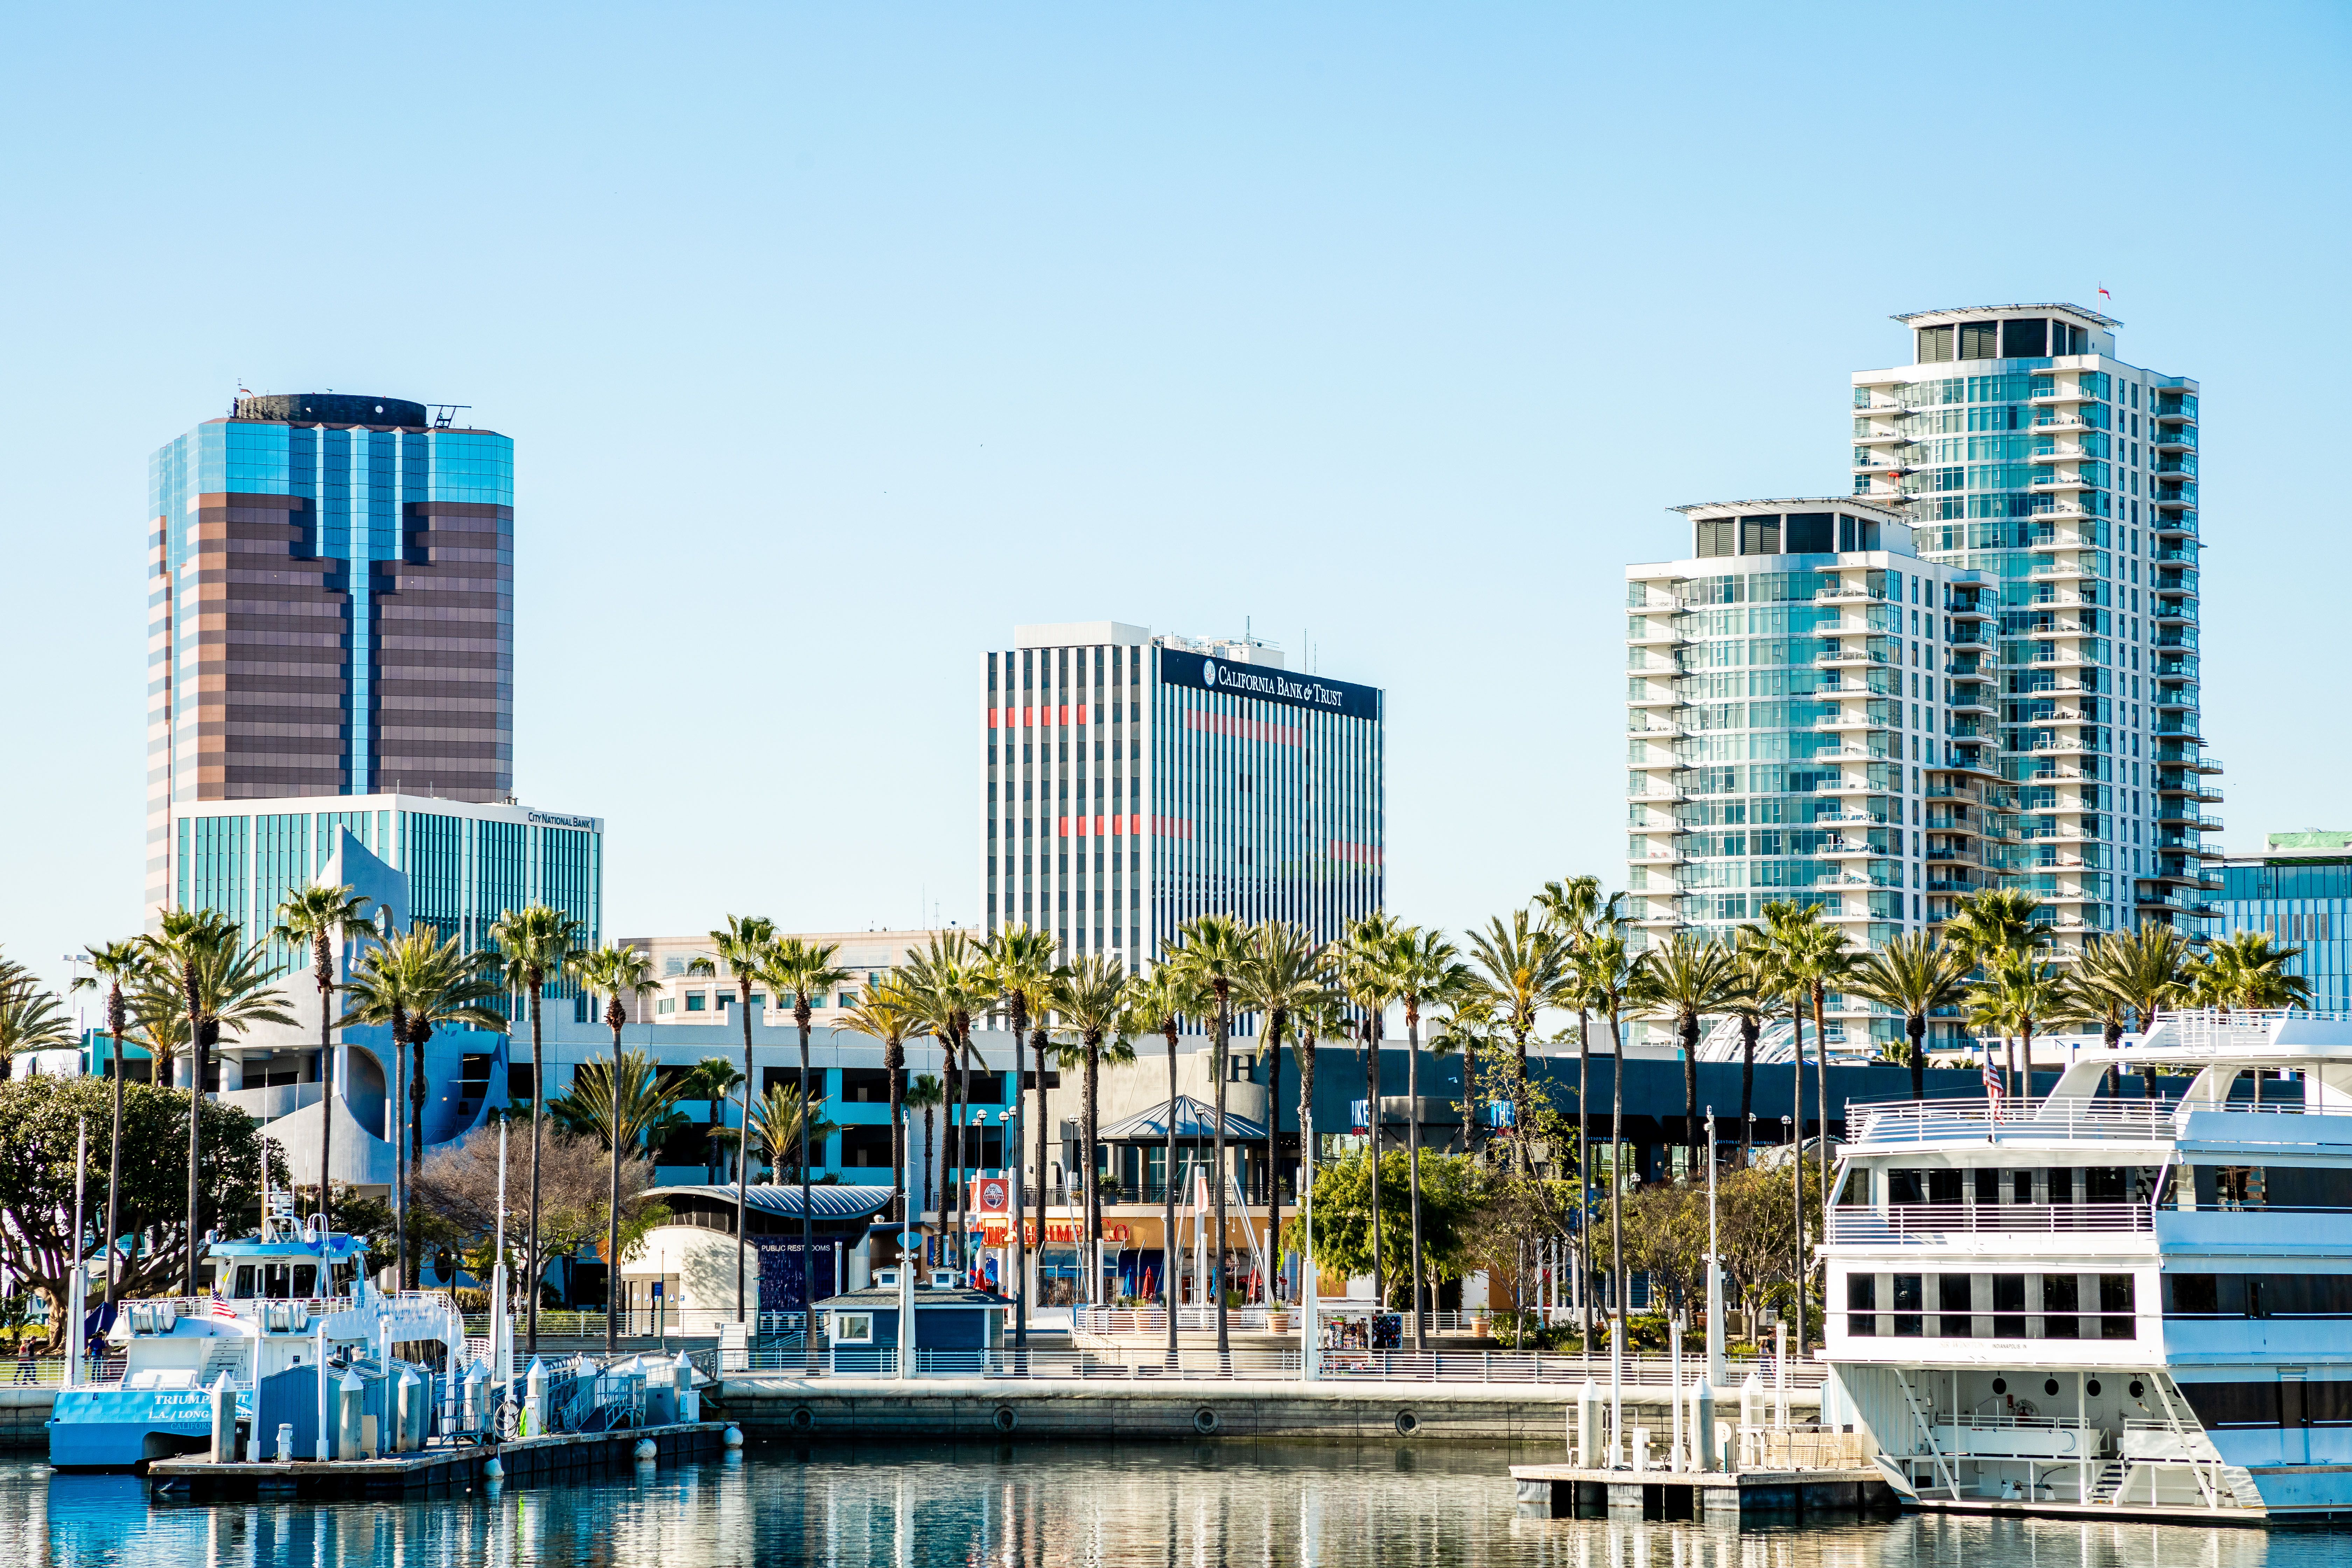 How To Spend A Day Or Weekend In Long Beach California